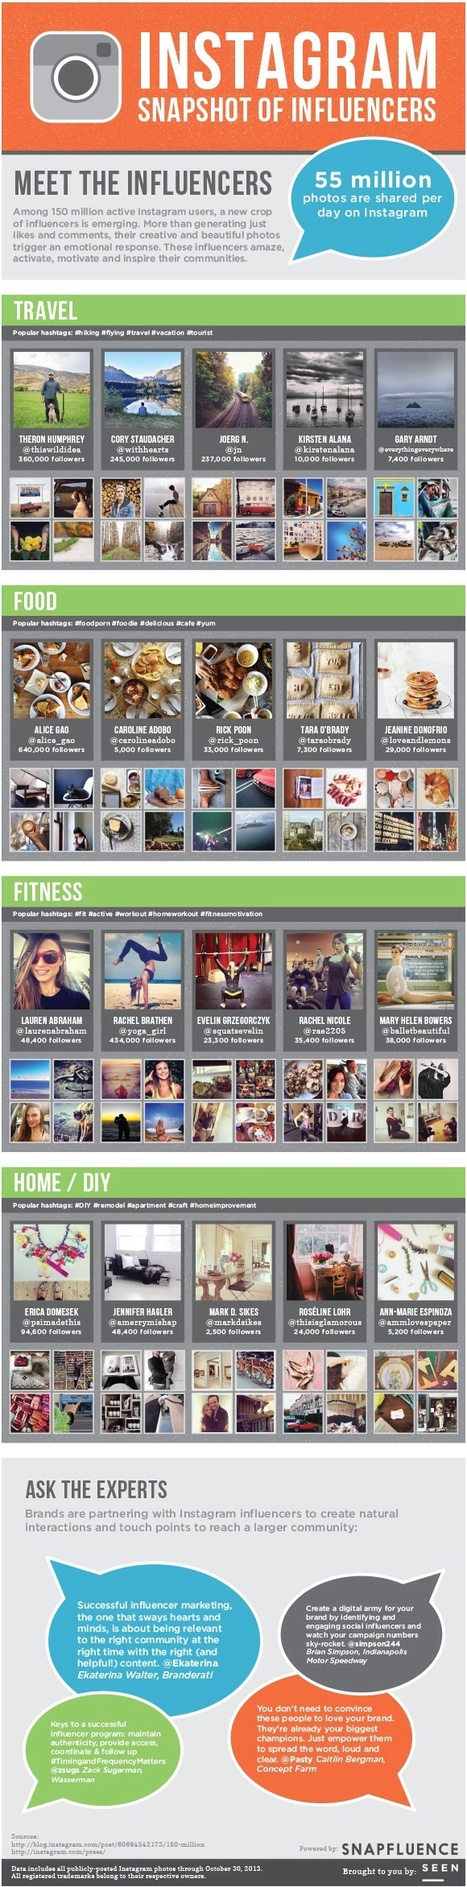 Snapshot Of Top Instagram Influencers [INFOGRAPHIC] | digital marketing strategy | Scoop.it